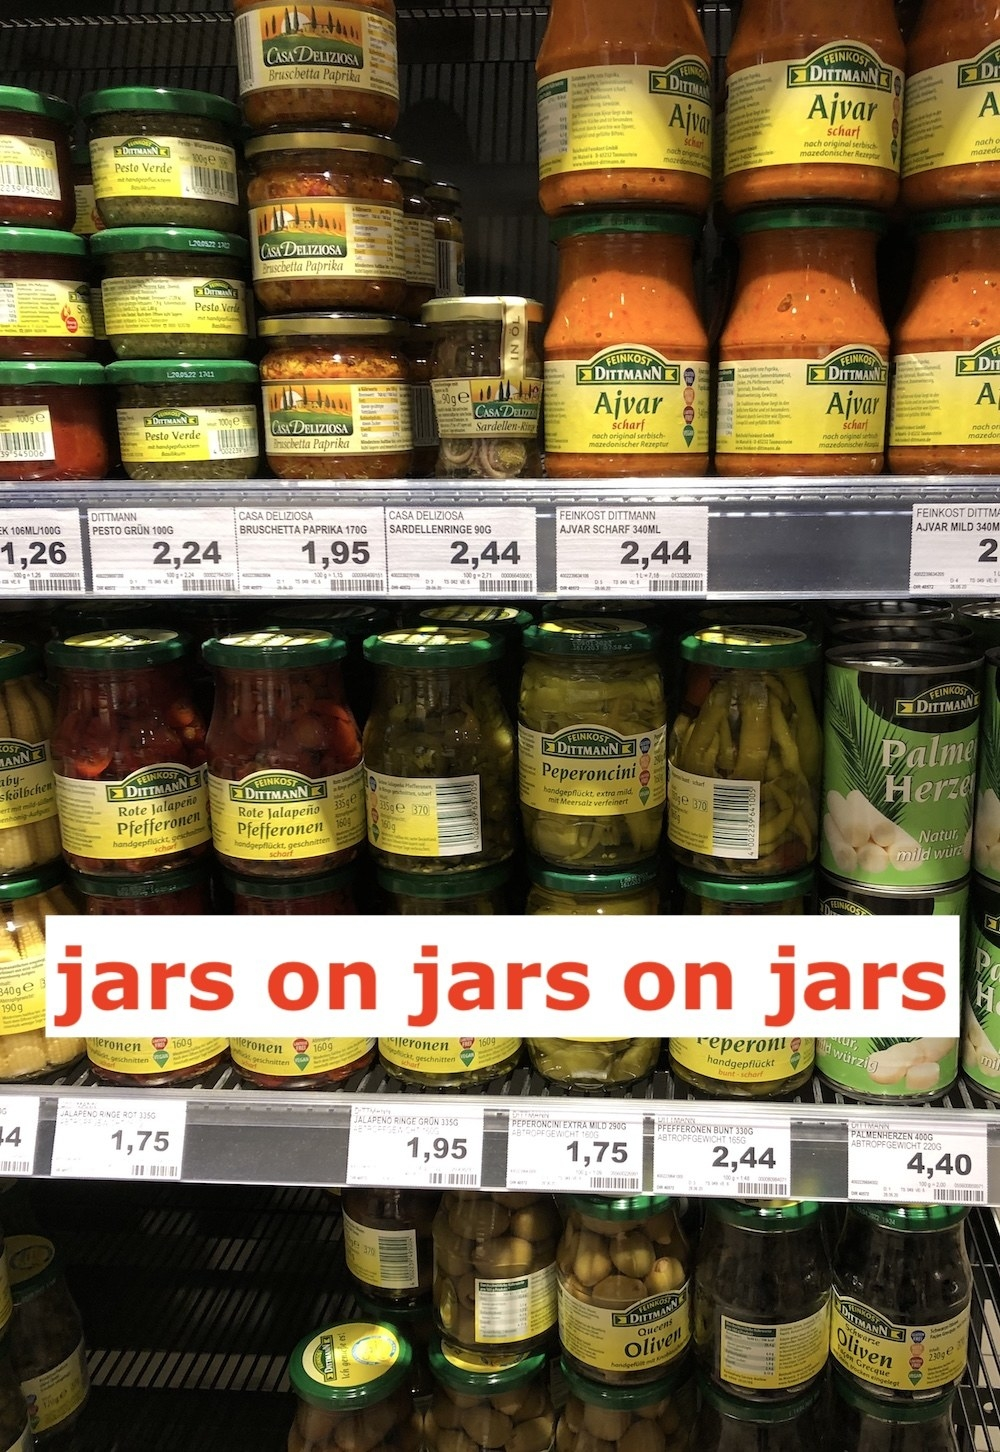 Display of jarred goods at German supermarket